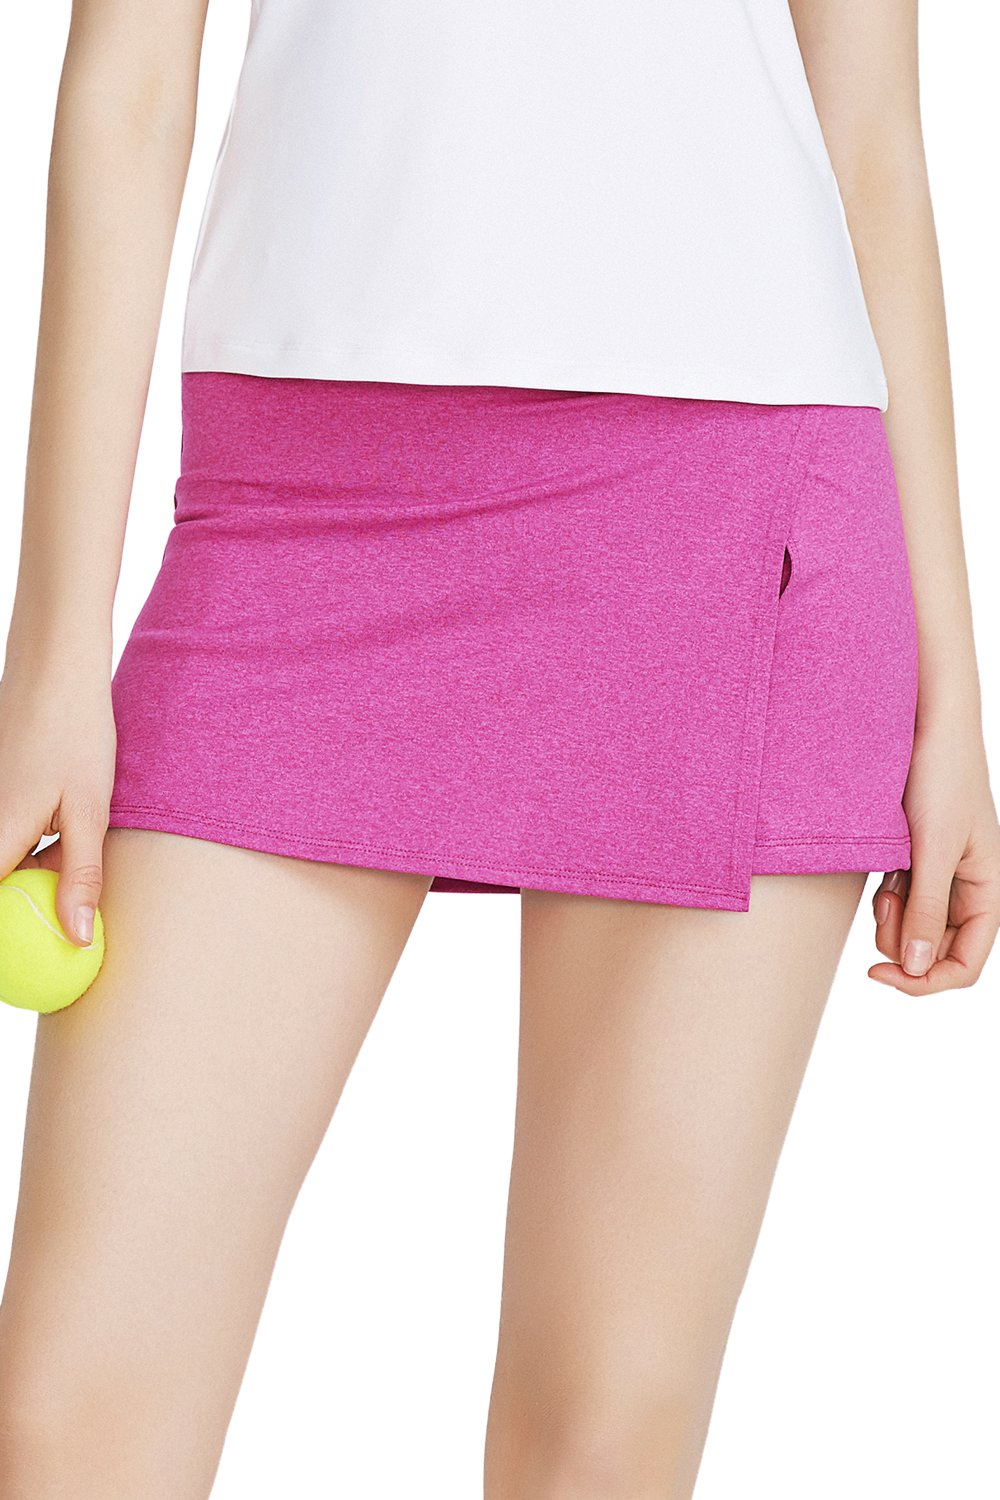 32e-SANERYI Women's Tennis Skirt Mid Waist Skort Side Pocket-Fuchsia